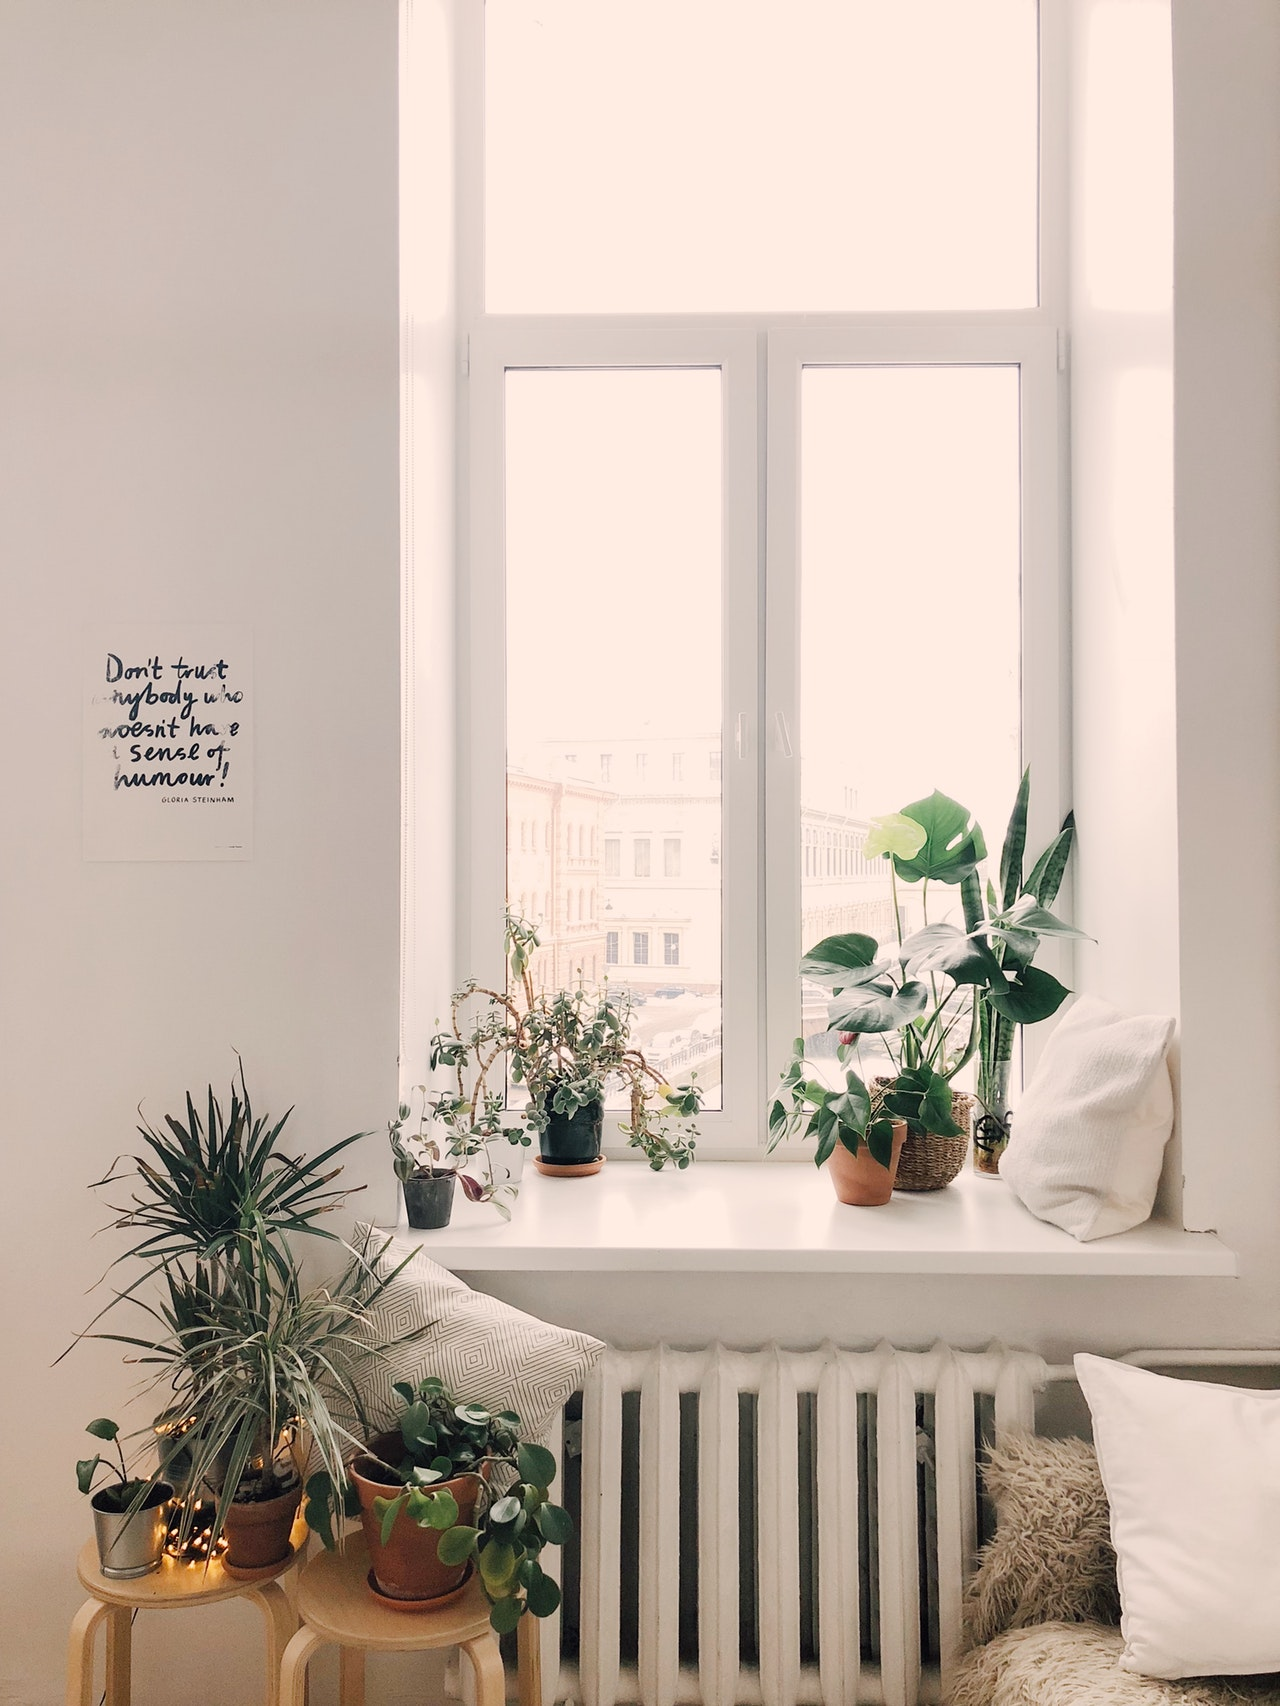 A room with potted plants